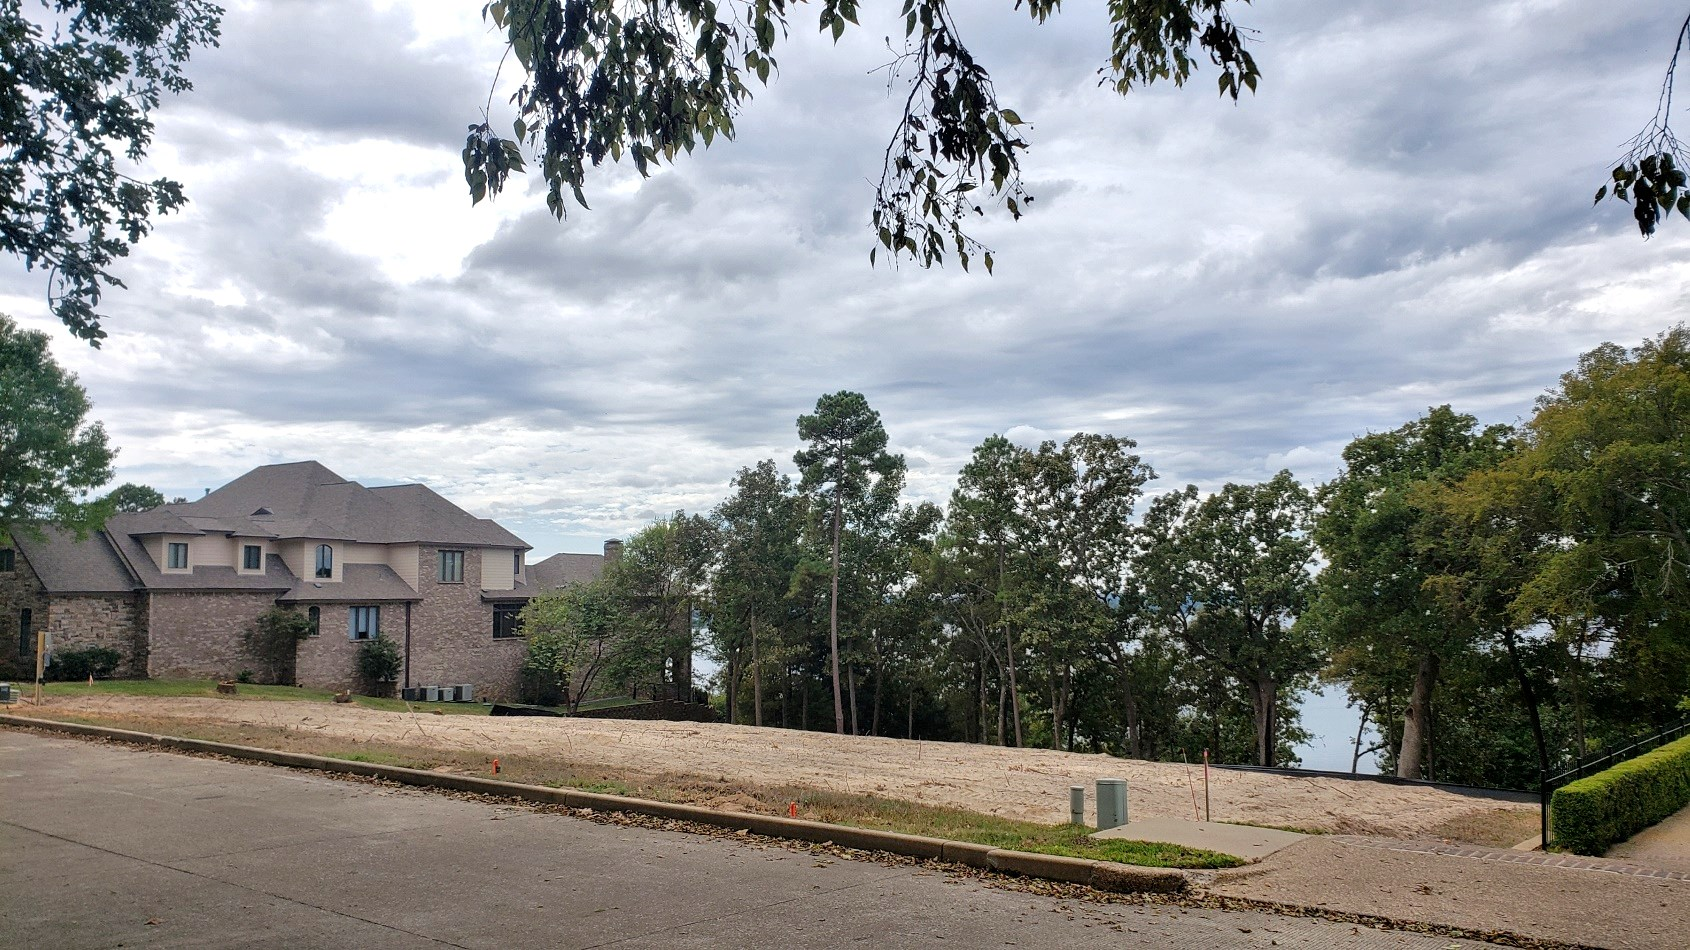 WATERVIEW LOT FOR SALE IN EAGLE'S BLUFF GOLF COMMUNITY